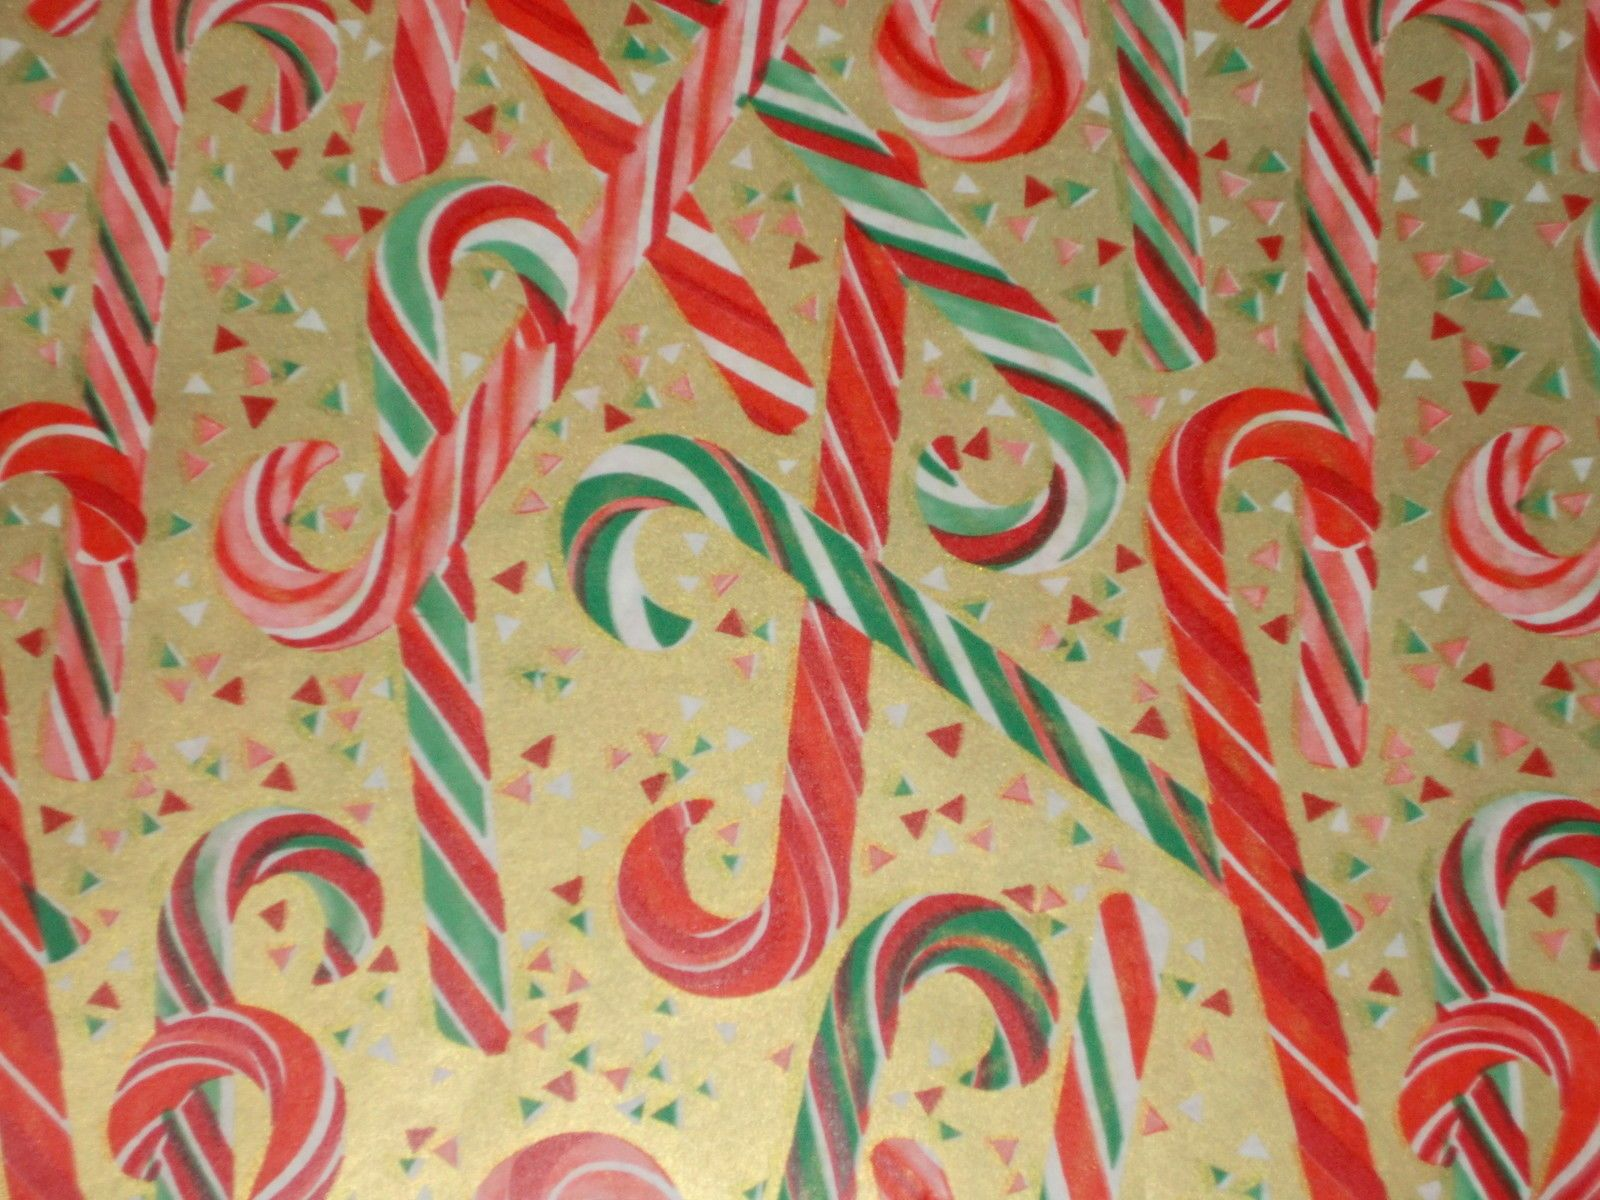 Vtg Christmas Wrapping Paper Gift Wrap Mcm Gold With Candy